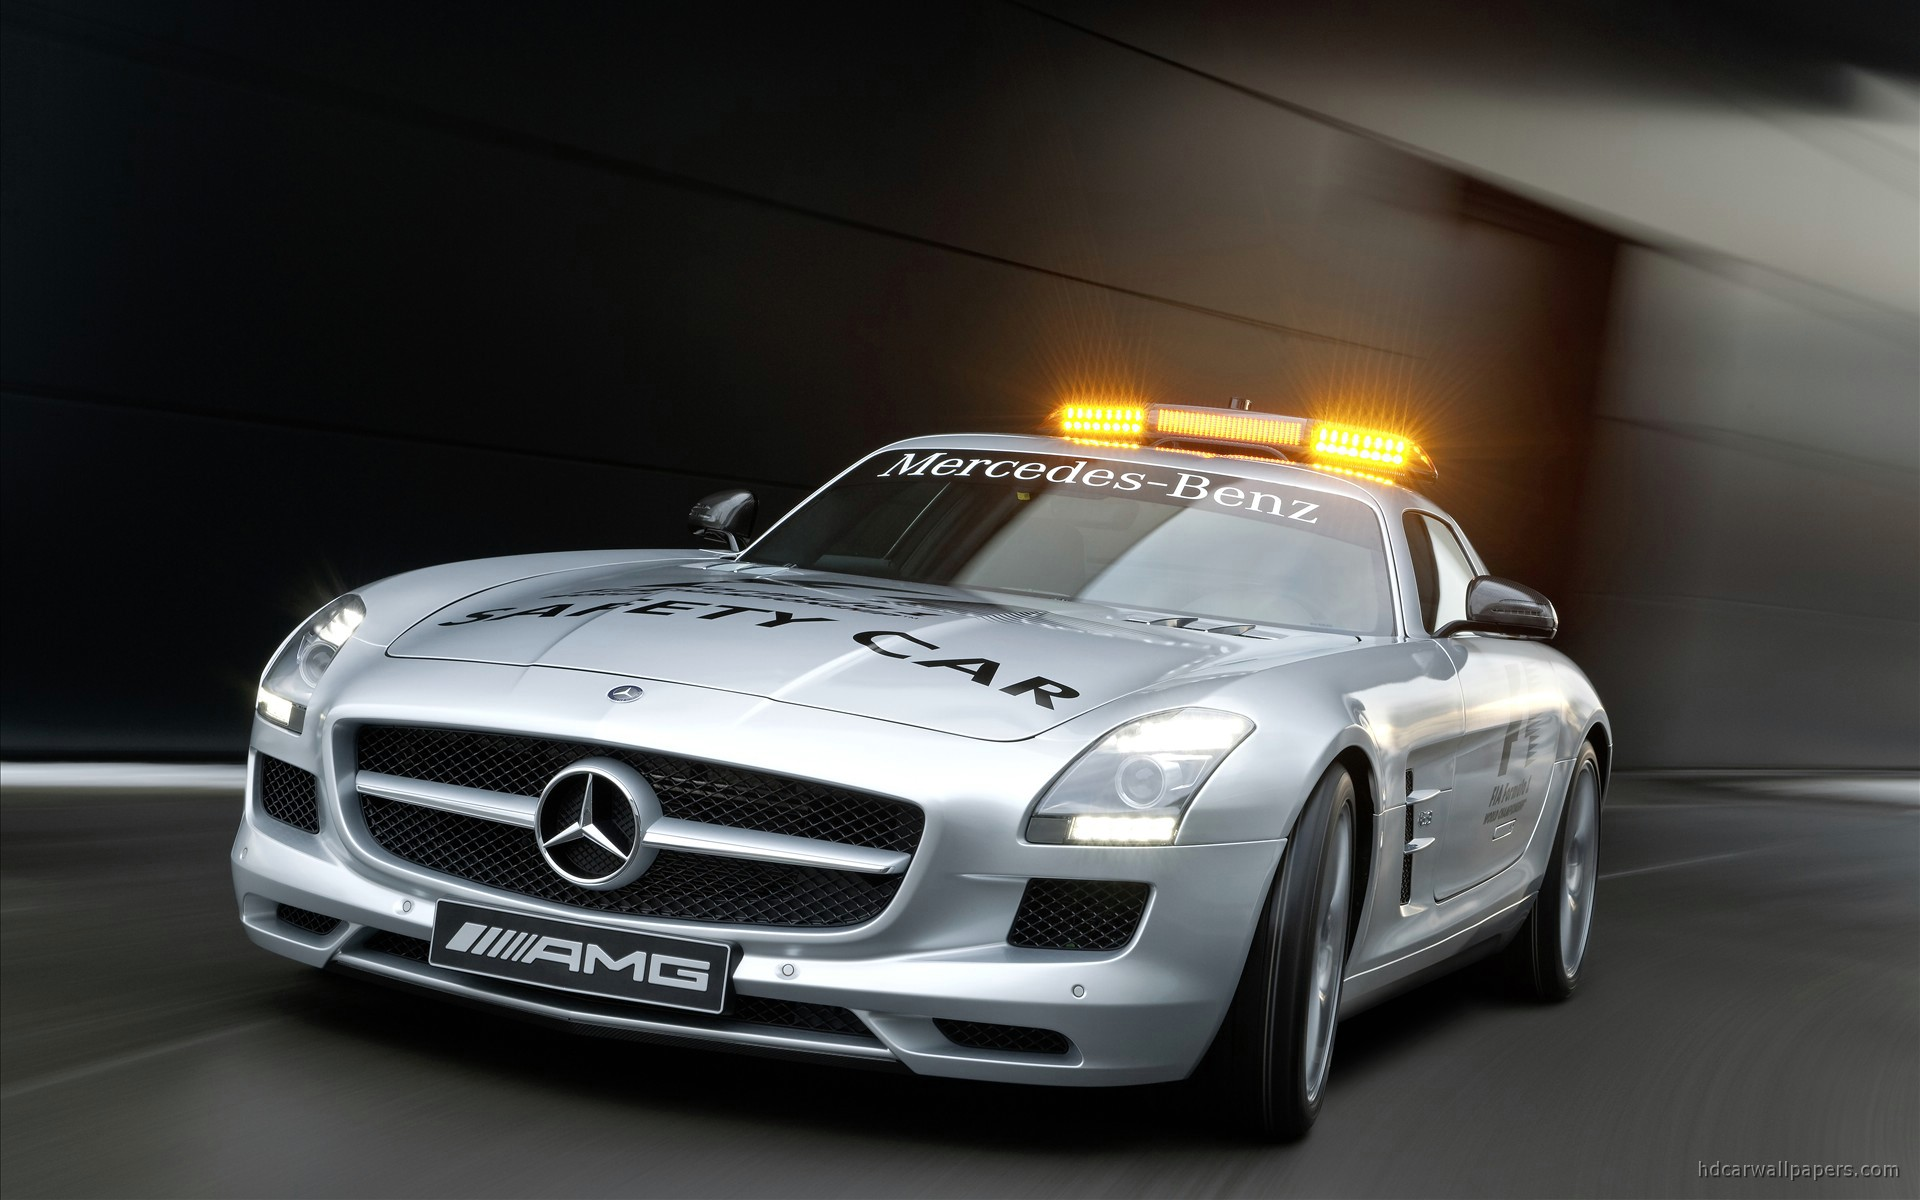 2010 mercedes benz sls amg f1 safety car 3 wallpaper hd for Mercedes benz cars pictures